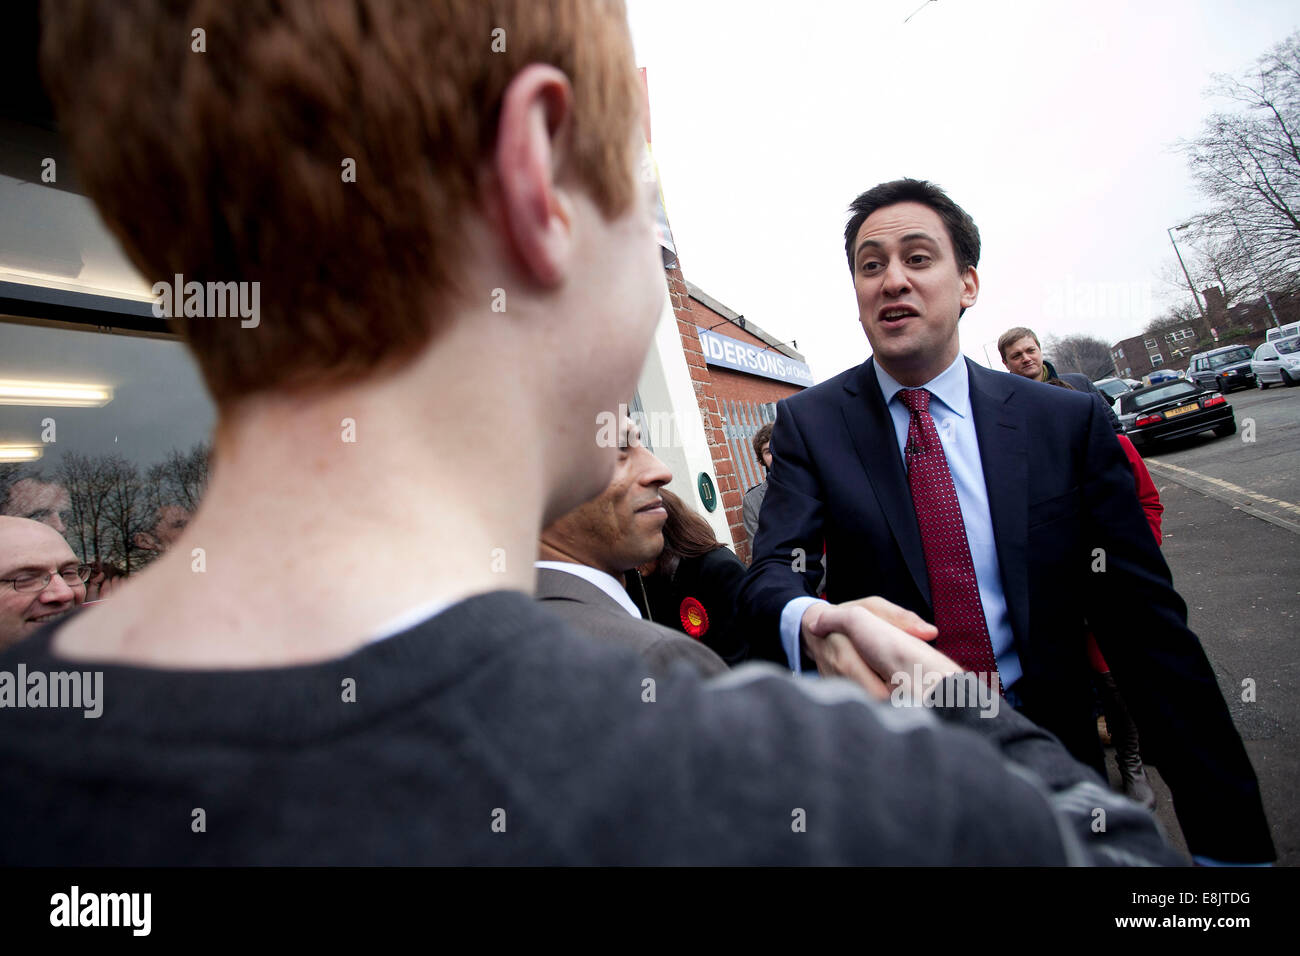 Oldham East and Saddleworth by election. Ed Miliband  supports Labour candidate Debbie Abrahams 03/1/11 - Stock Image